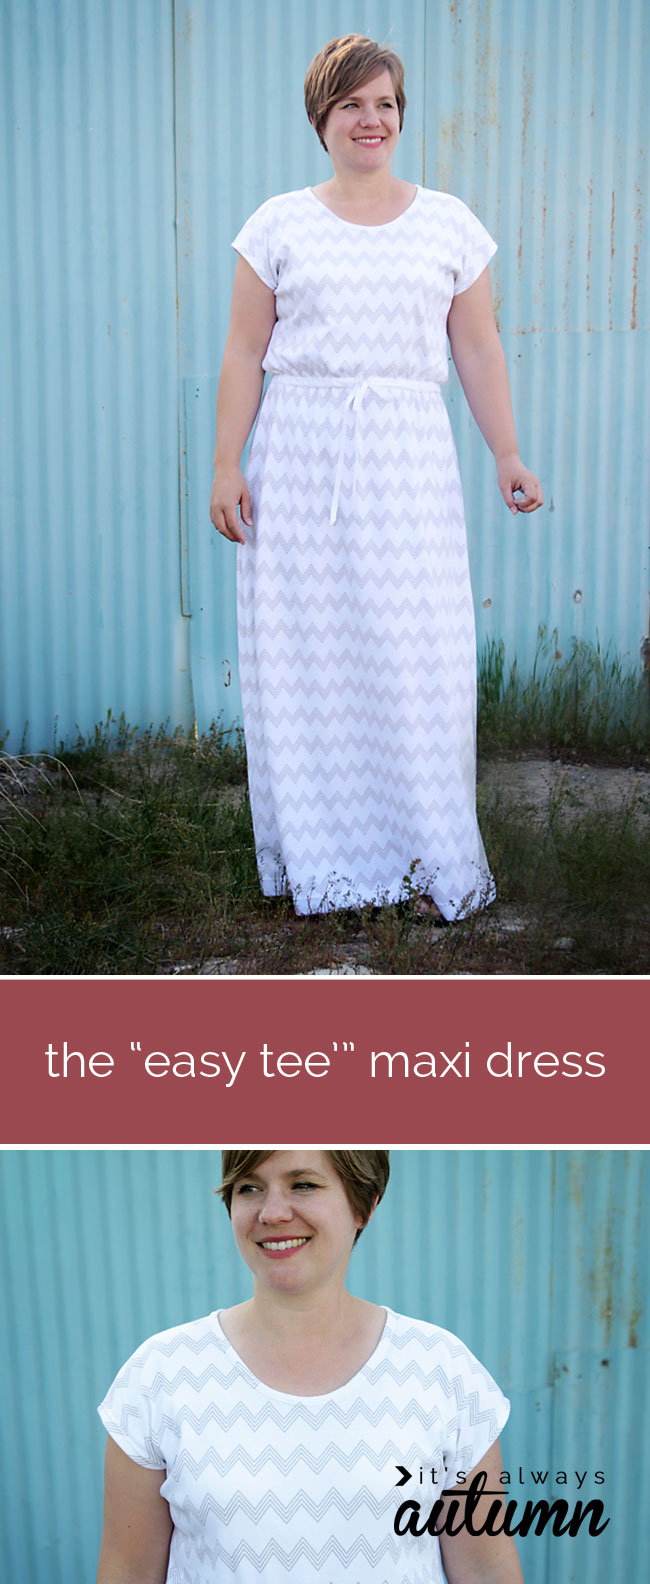 How to sew a maxi dress easy instructions to make a maxi dress how to sew a comfy maxi dress without a pattern jeuxipadfo Image collections